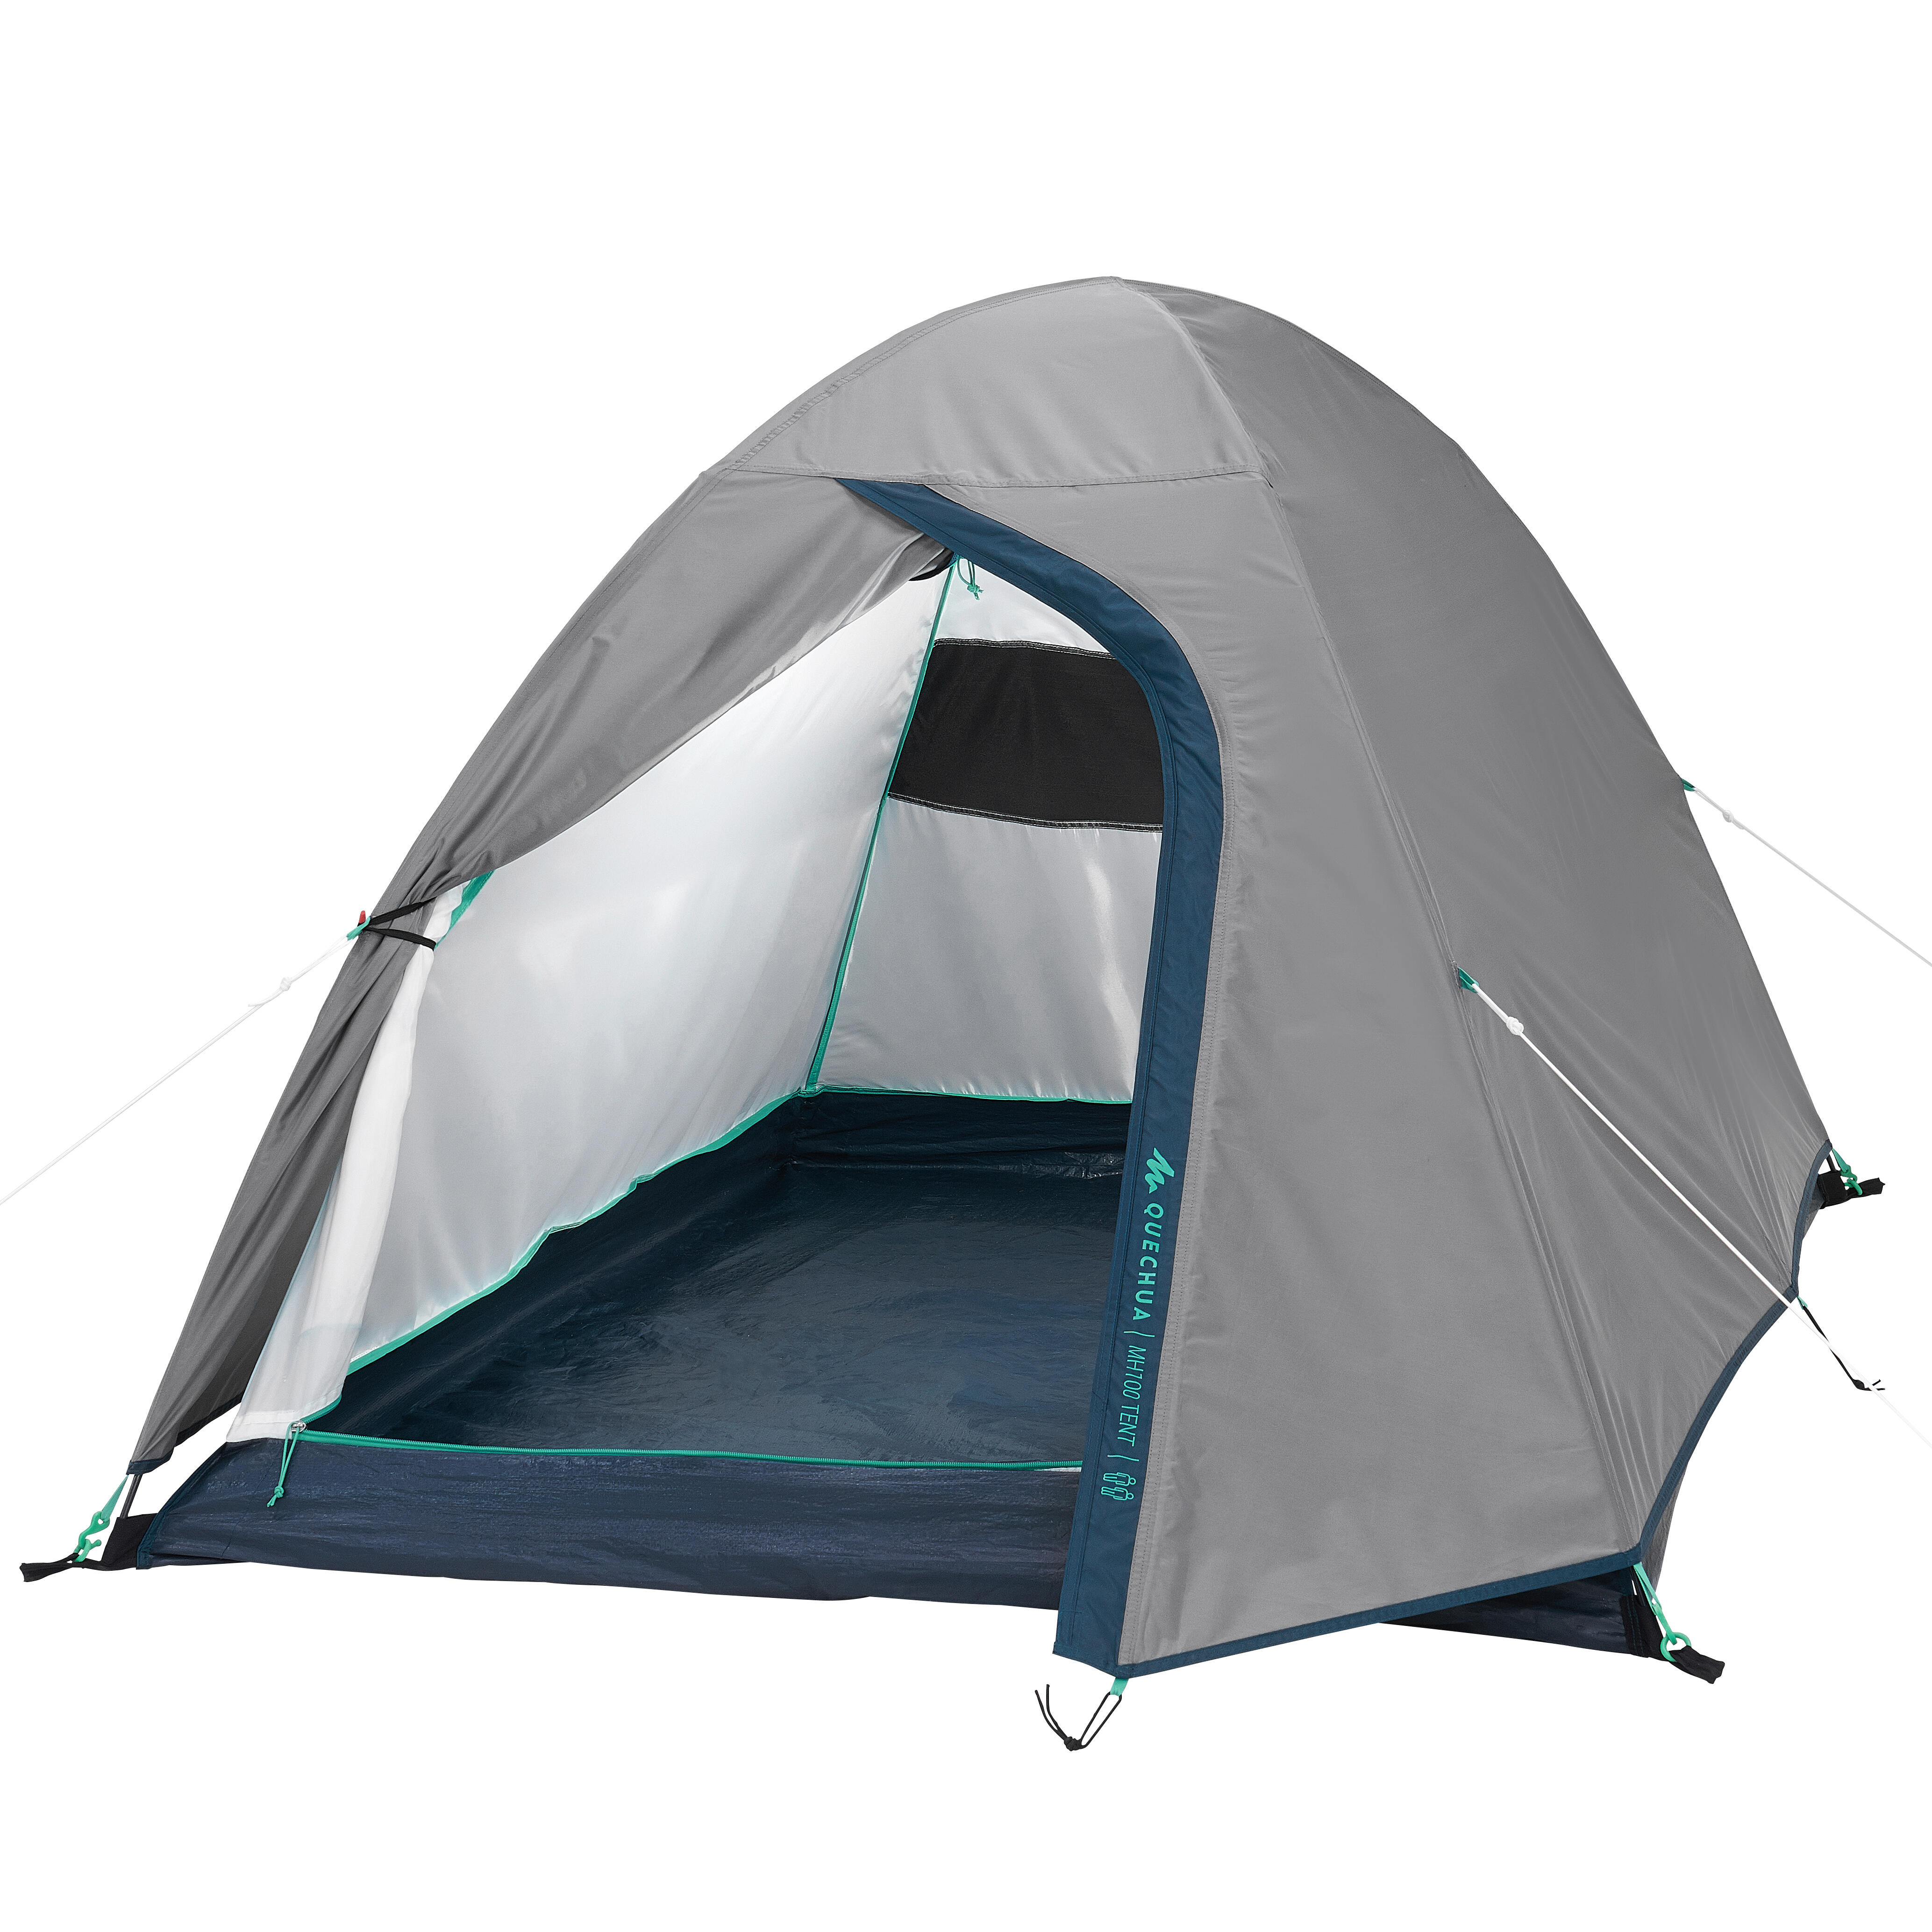 Cort Camping MH100 2P